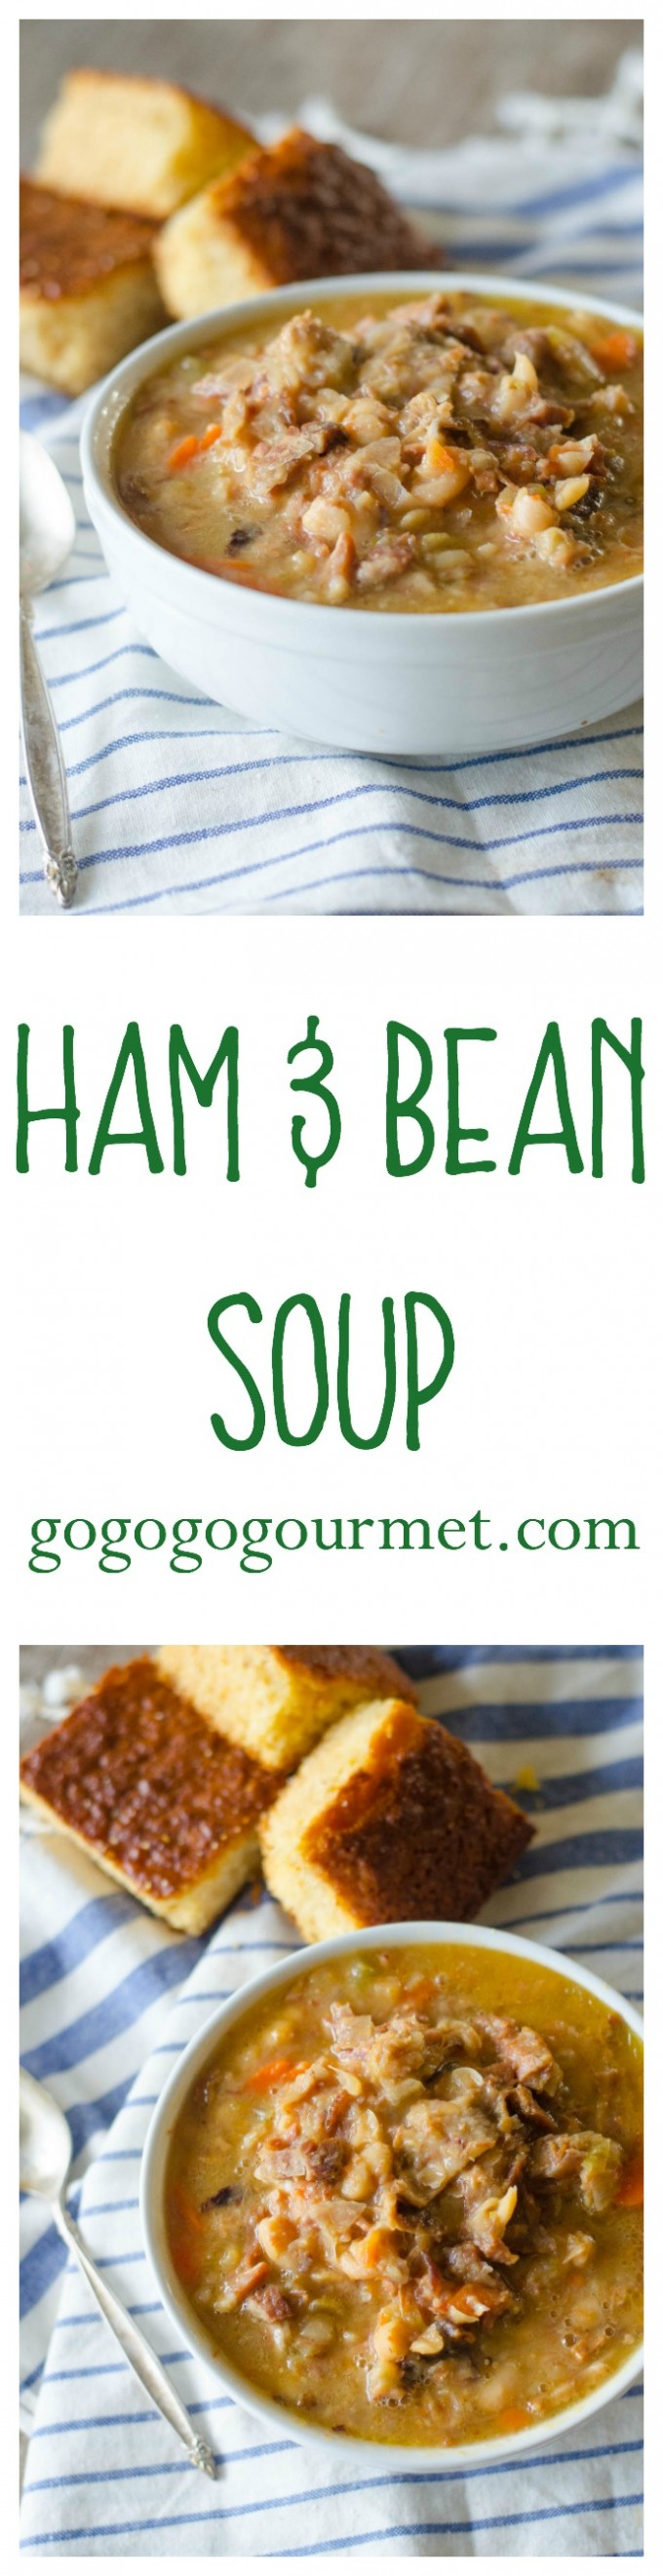 Who has leftover ham?? Here's the best way to put it to use! Ham & Bean Soup | Go Go Go Gourmet @Go Go Go Gourmet via @gogogogourmet